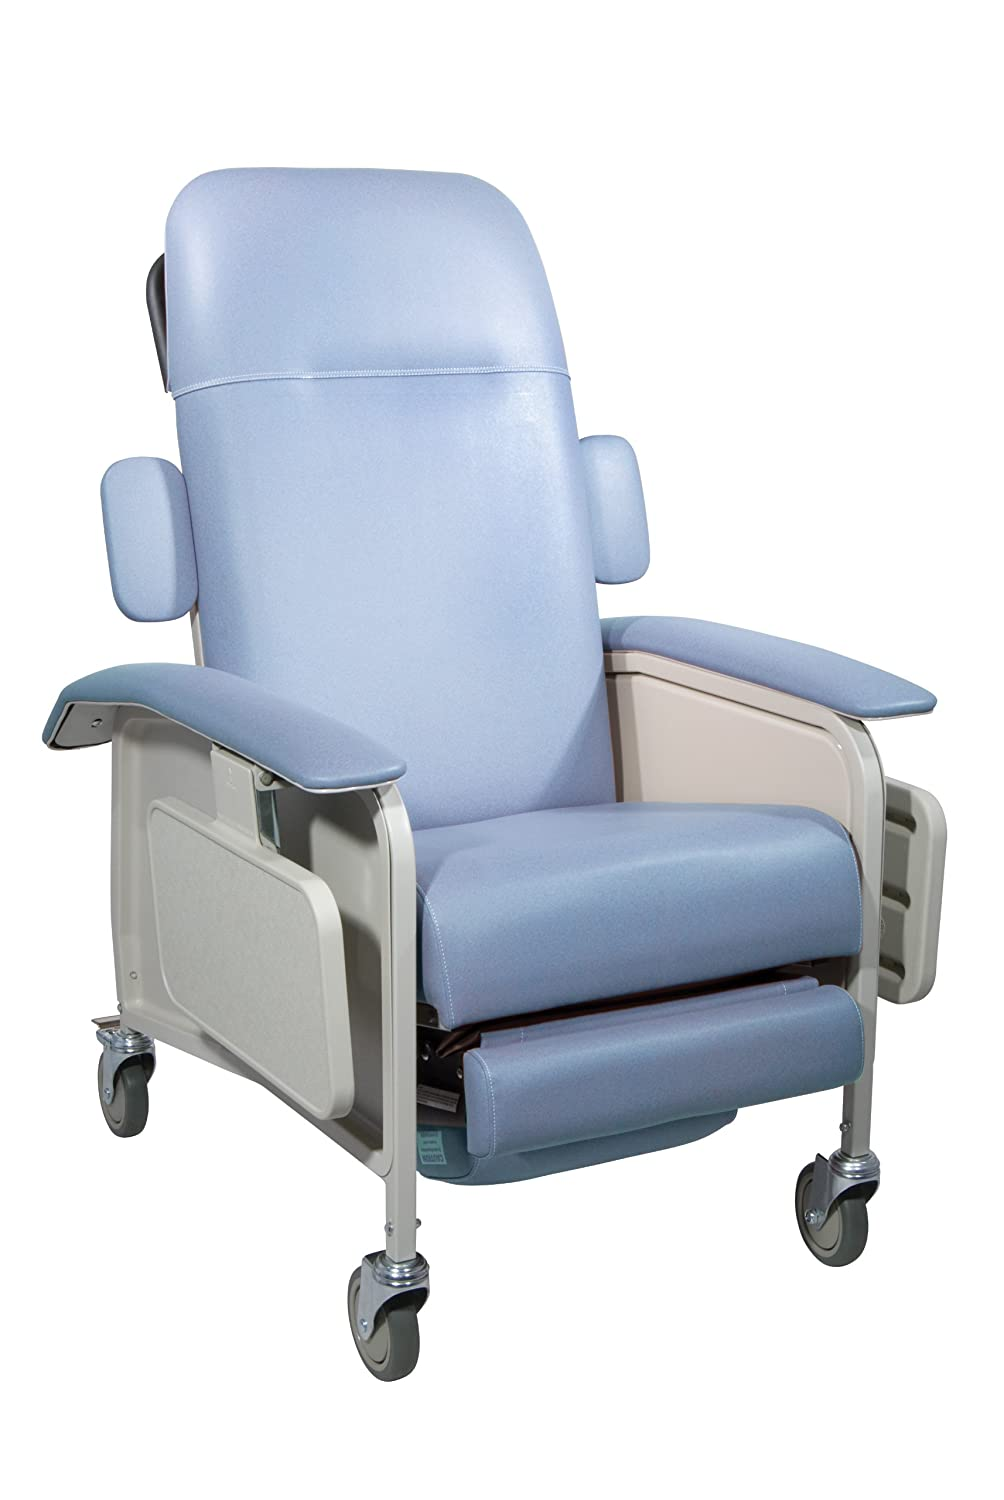 chairs bed alibaba manufacturers reviews directory chair suppliers importers exporters promotion graphics hospital awesome recliner manufacturer cherry tree